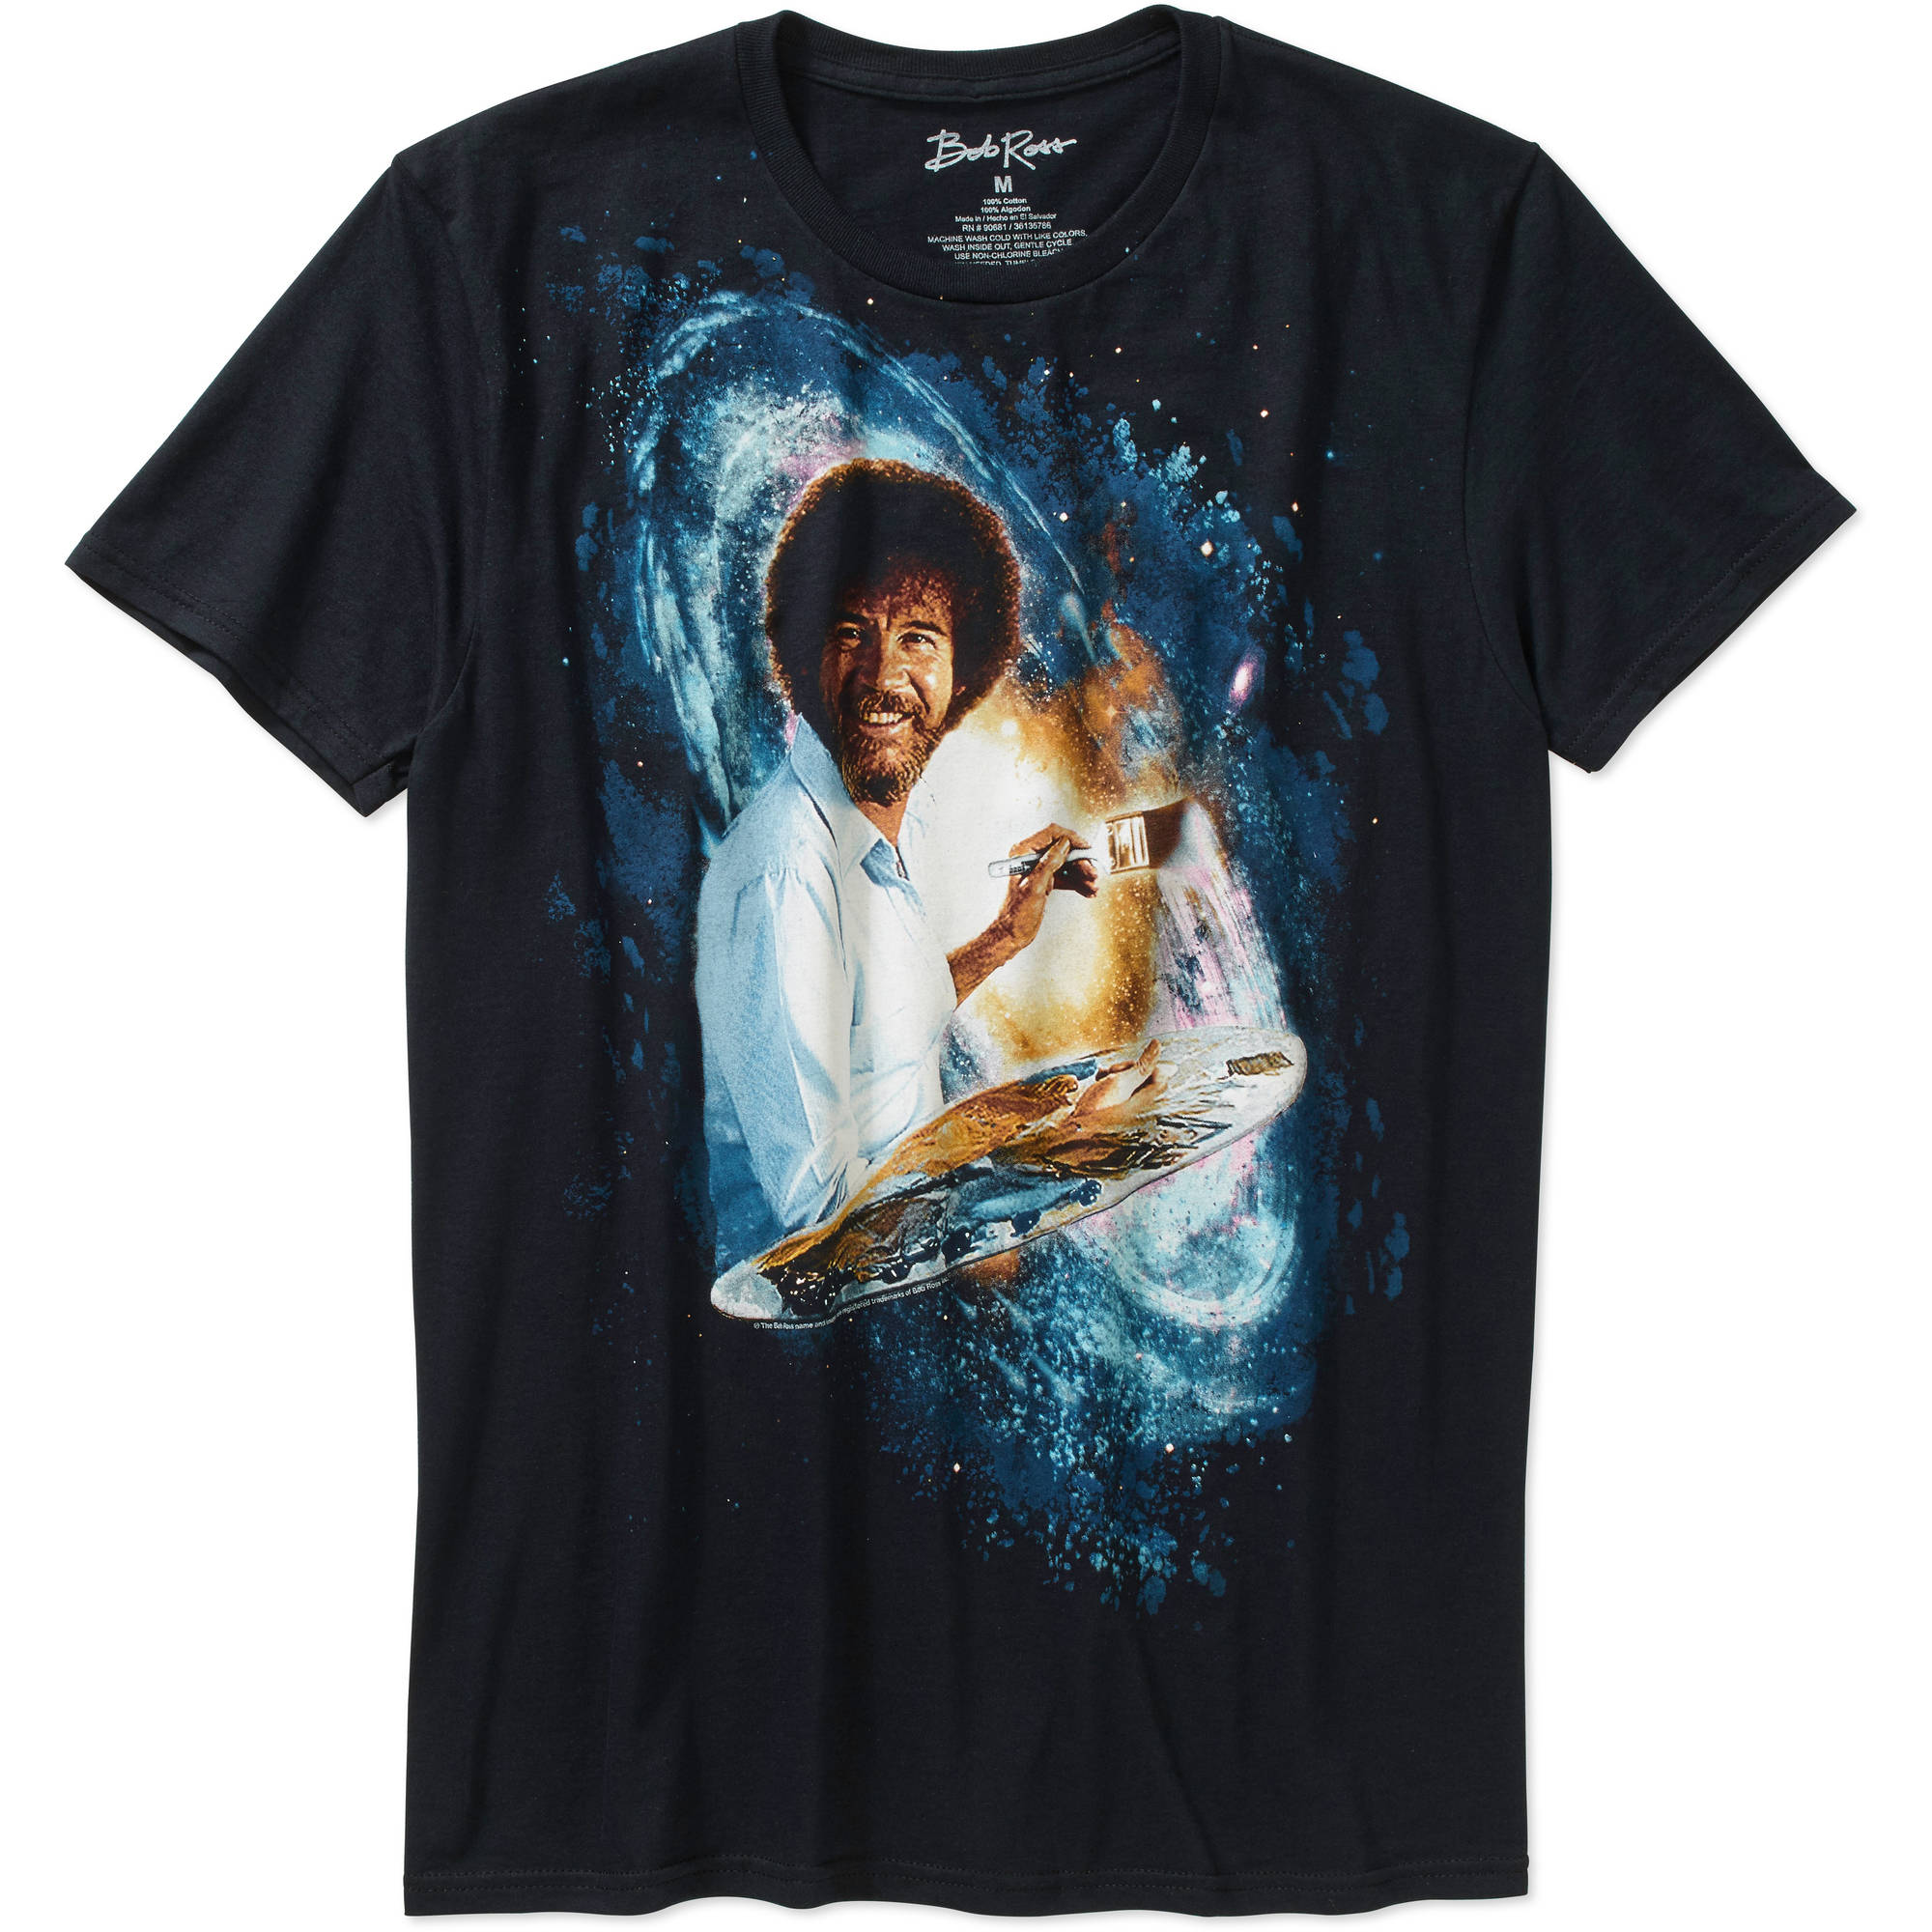 Bob Ross Galaxy Men's Graphic Tee